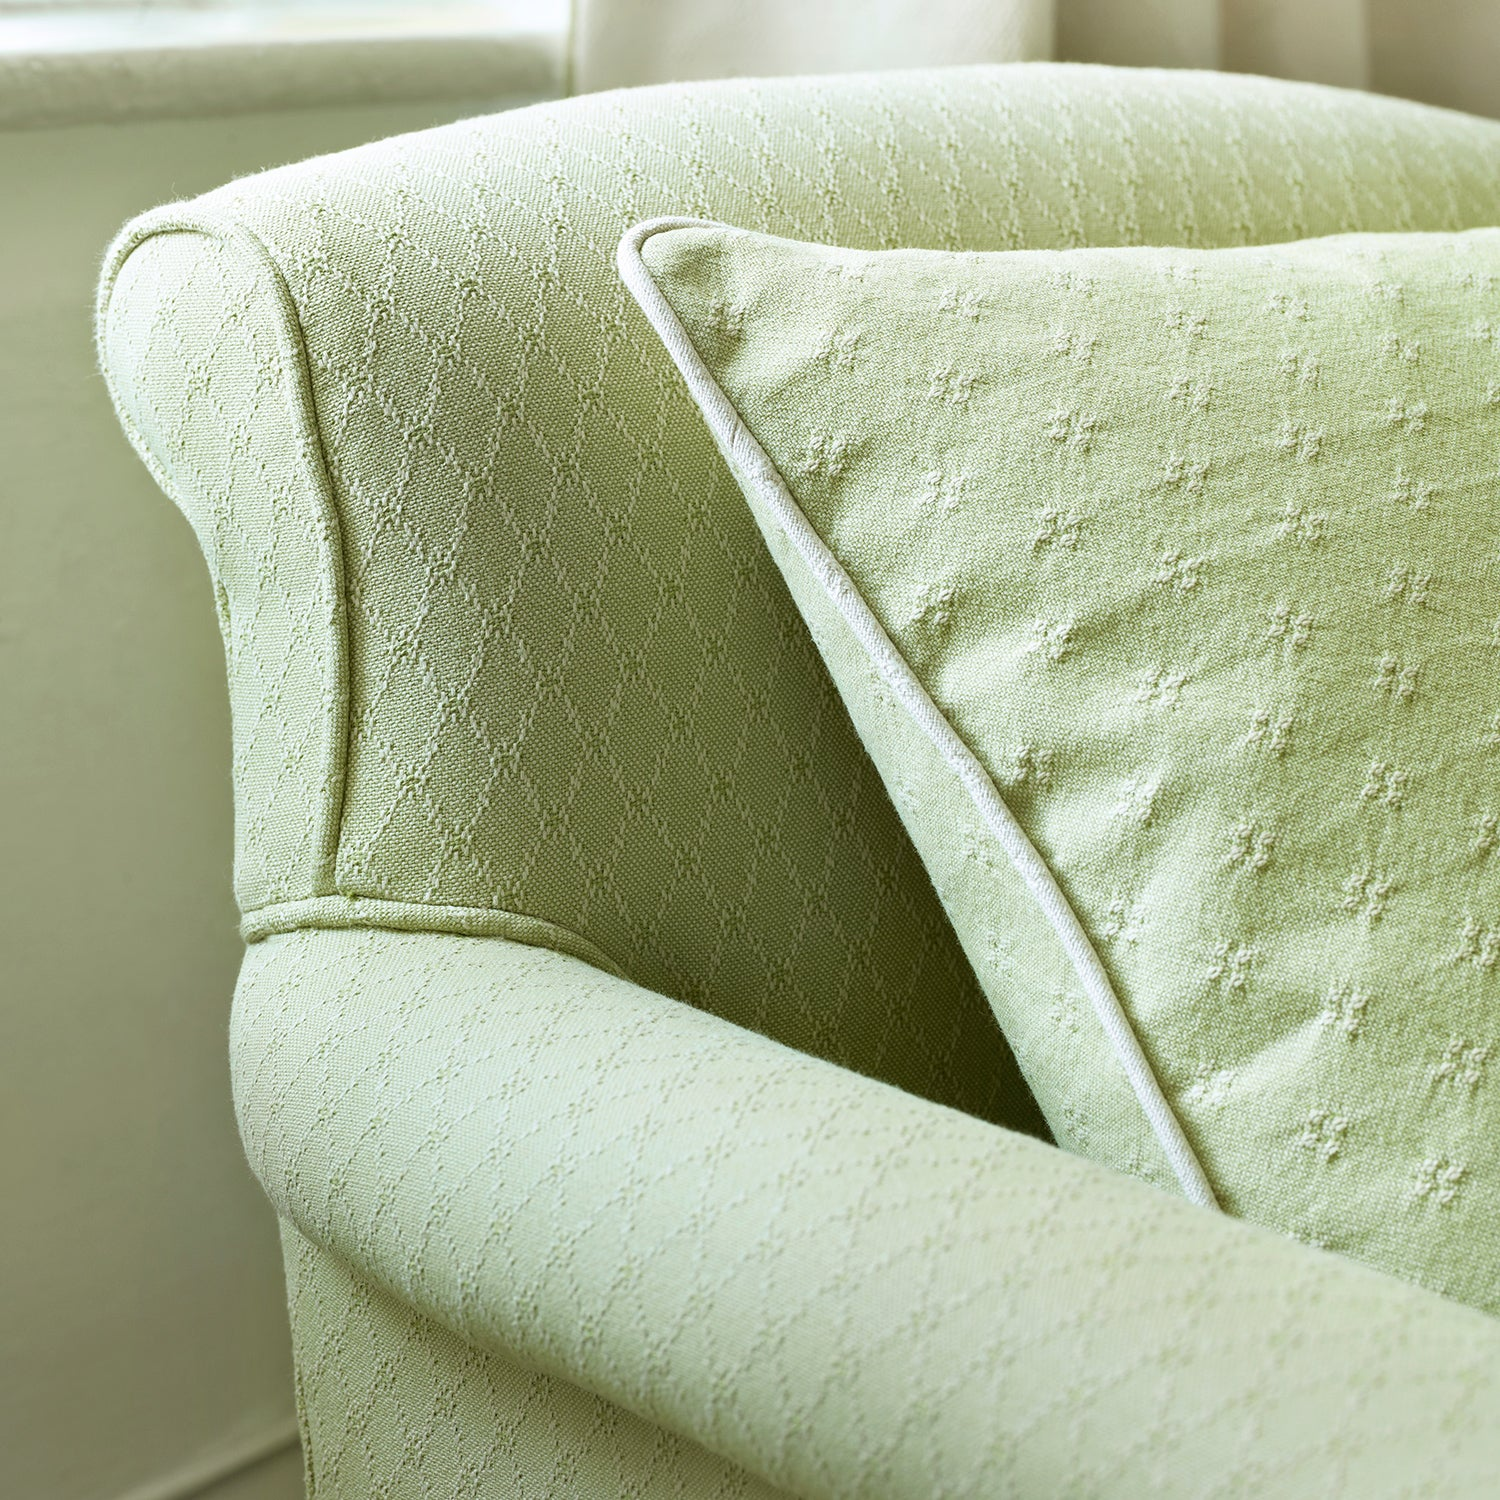 Armchair upholstered in a light green classic upholstery fabric with stain resistant finish